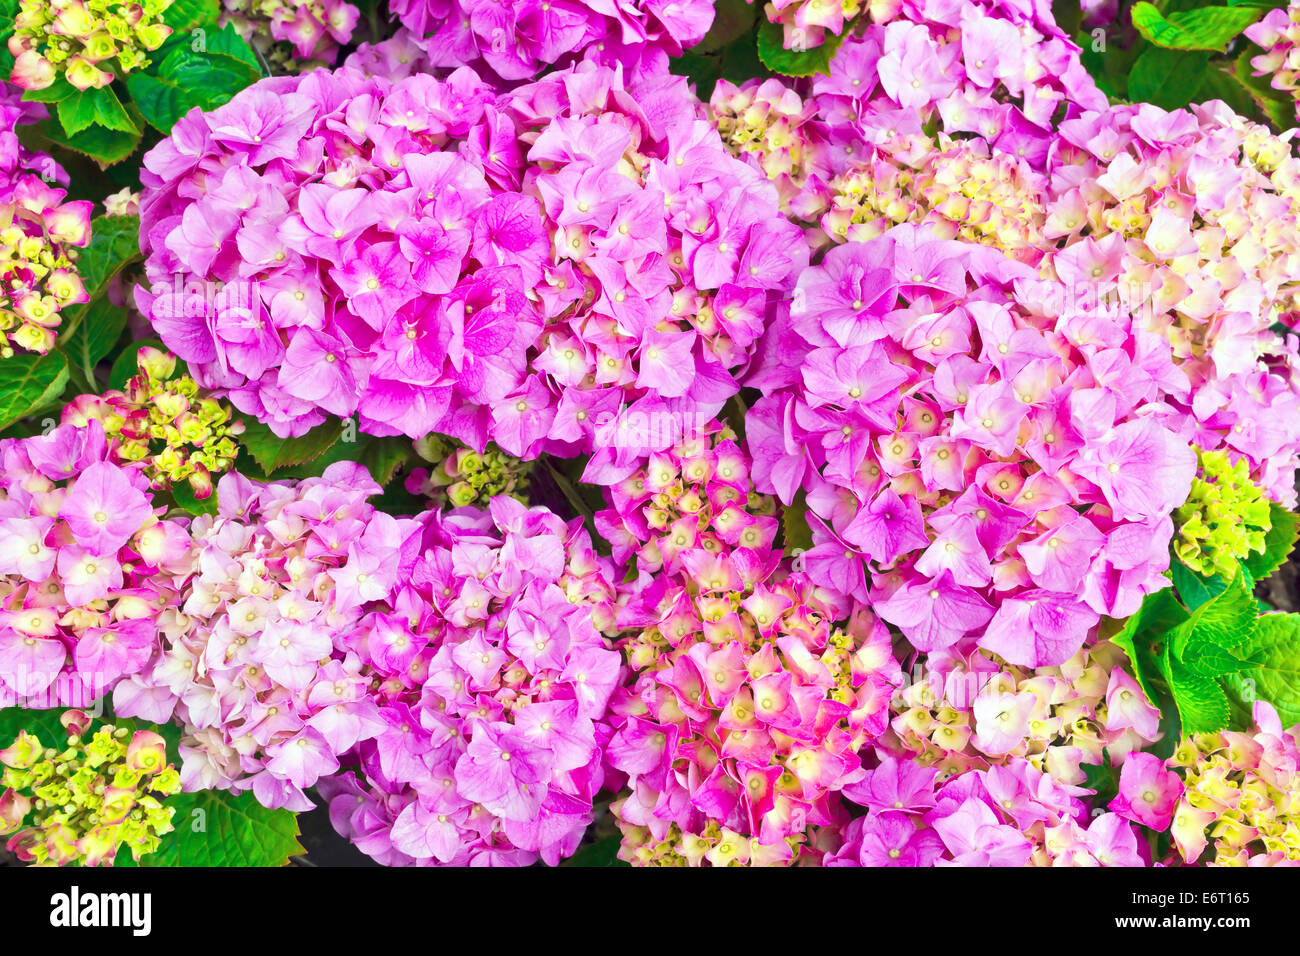 Pink hydrangea flower heads close-up. - Stock Image